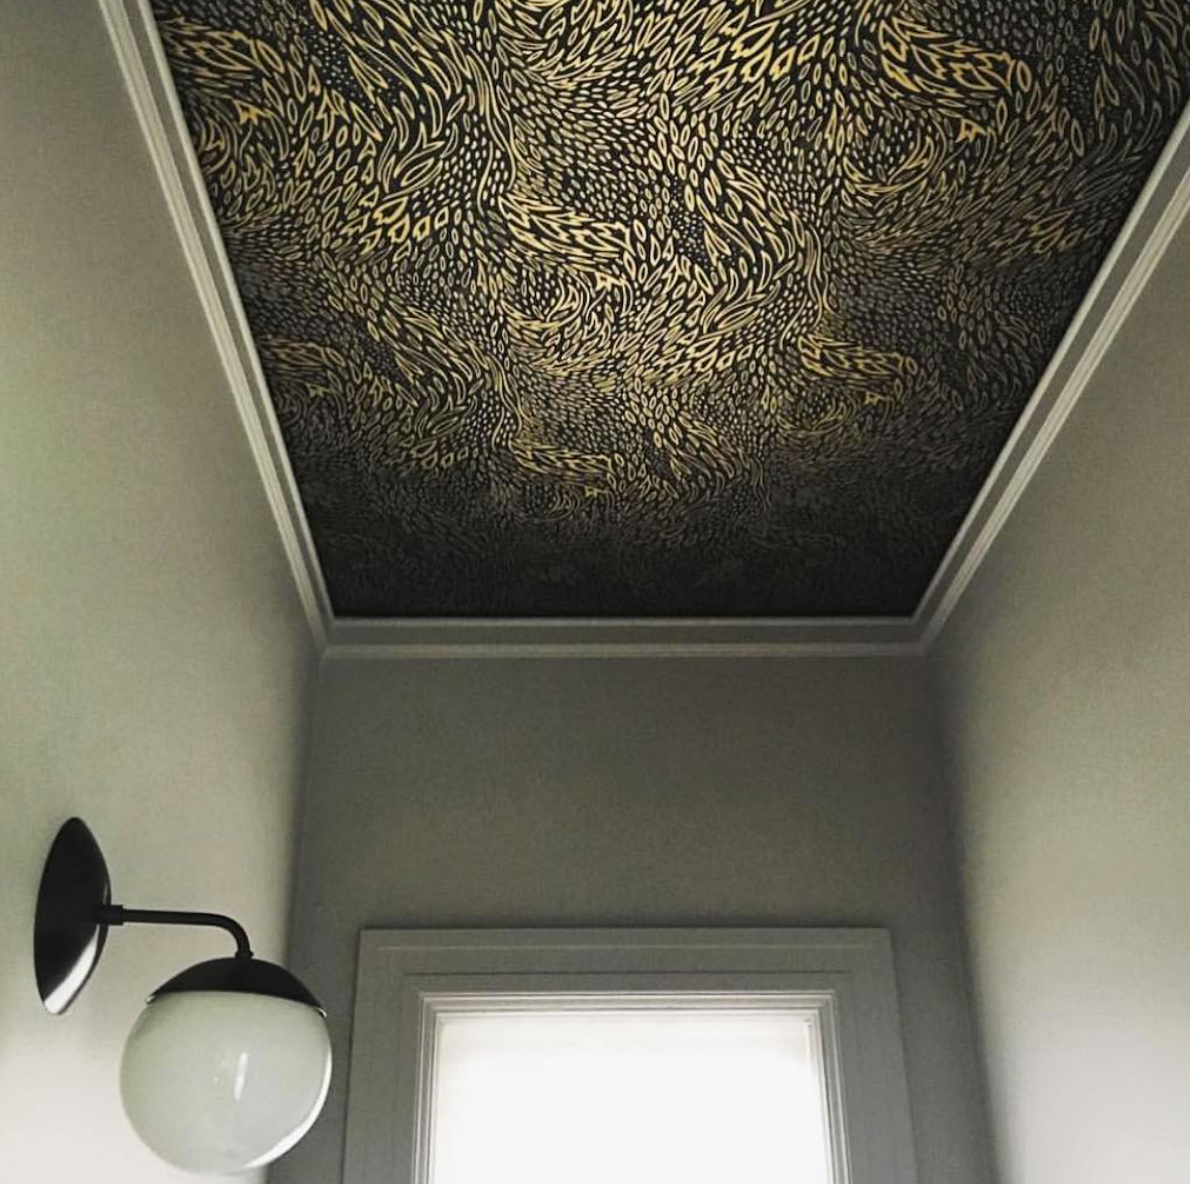 Best Wallpapers for a Ceiling Roundup | Forest Floor (Ebony)